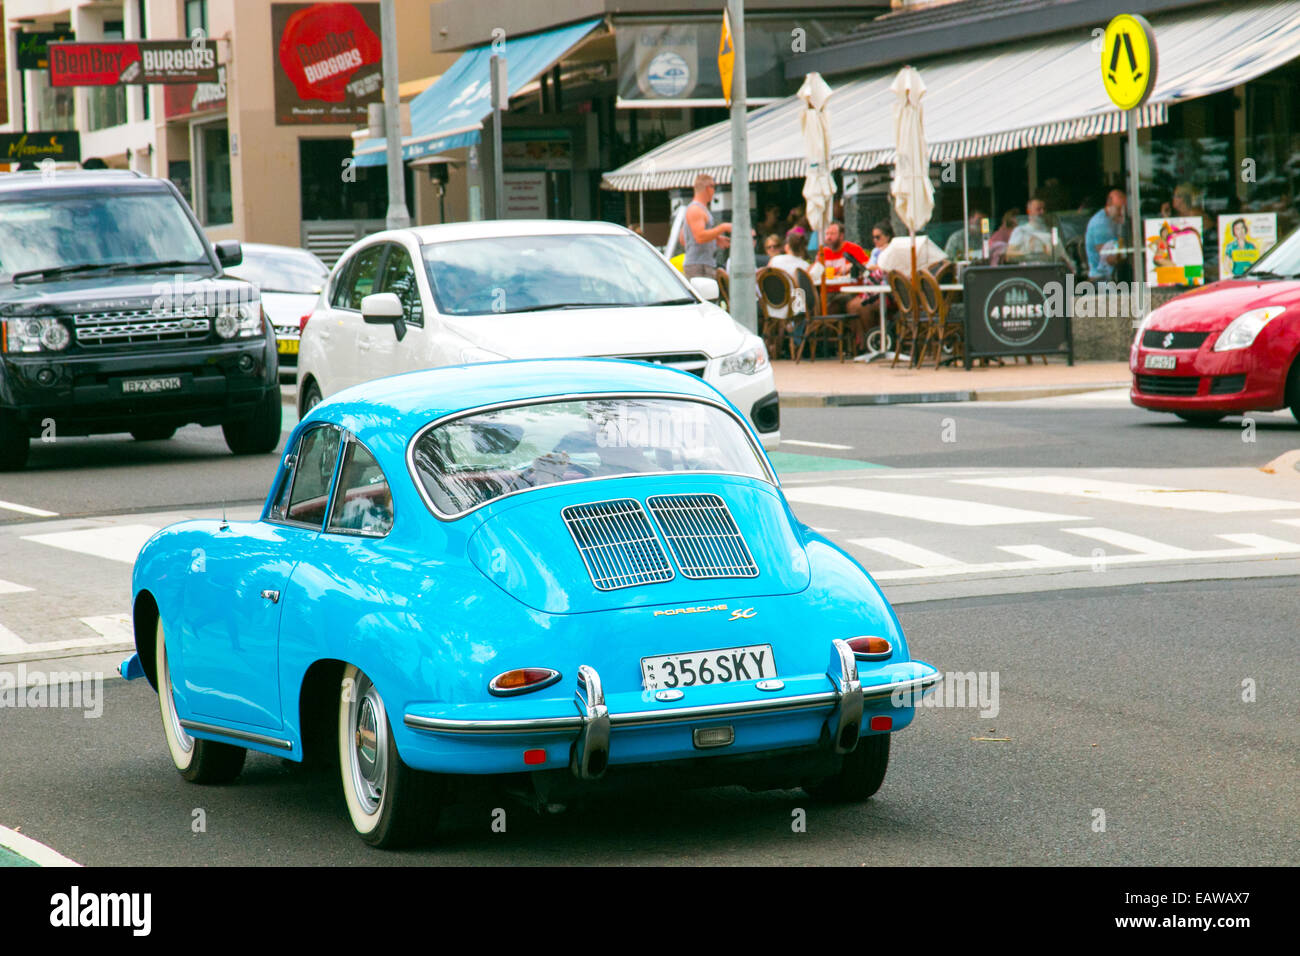 classic german porsche 911 in dee why on sydney's northern beaches,australia - Stock Image